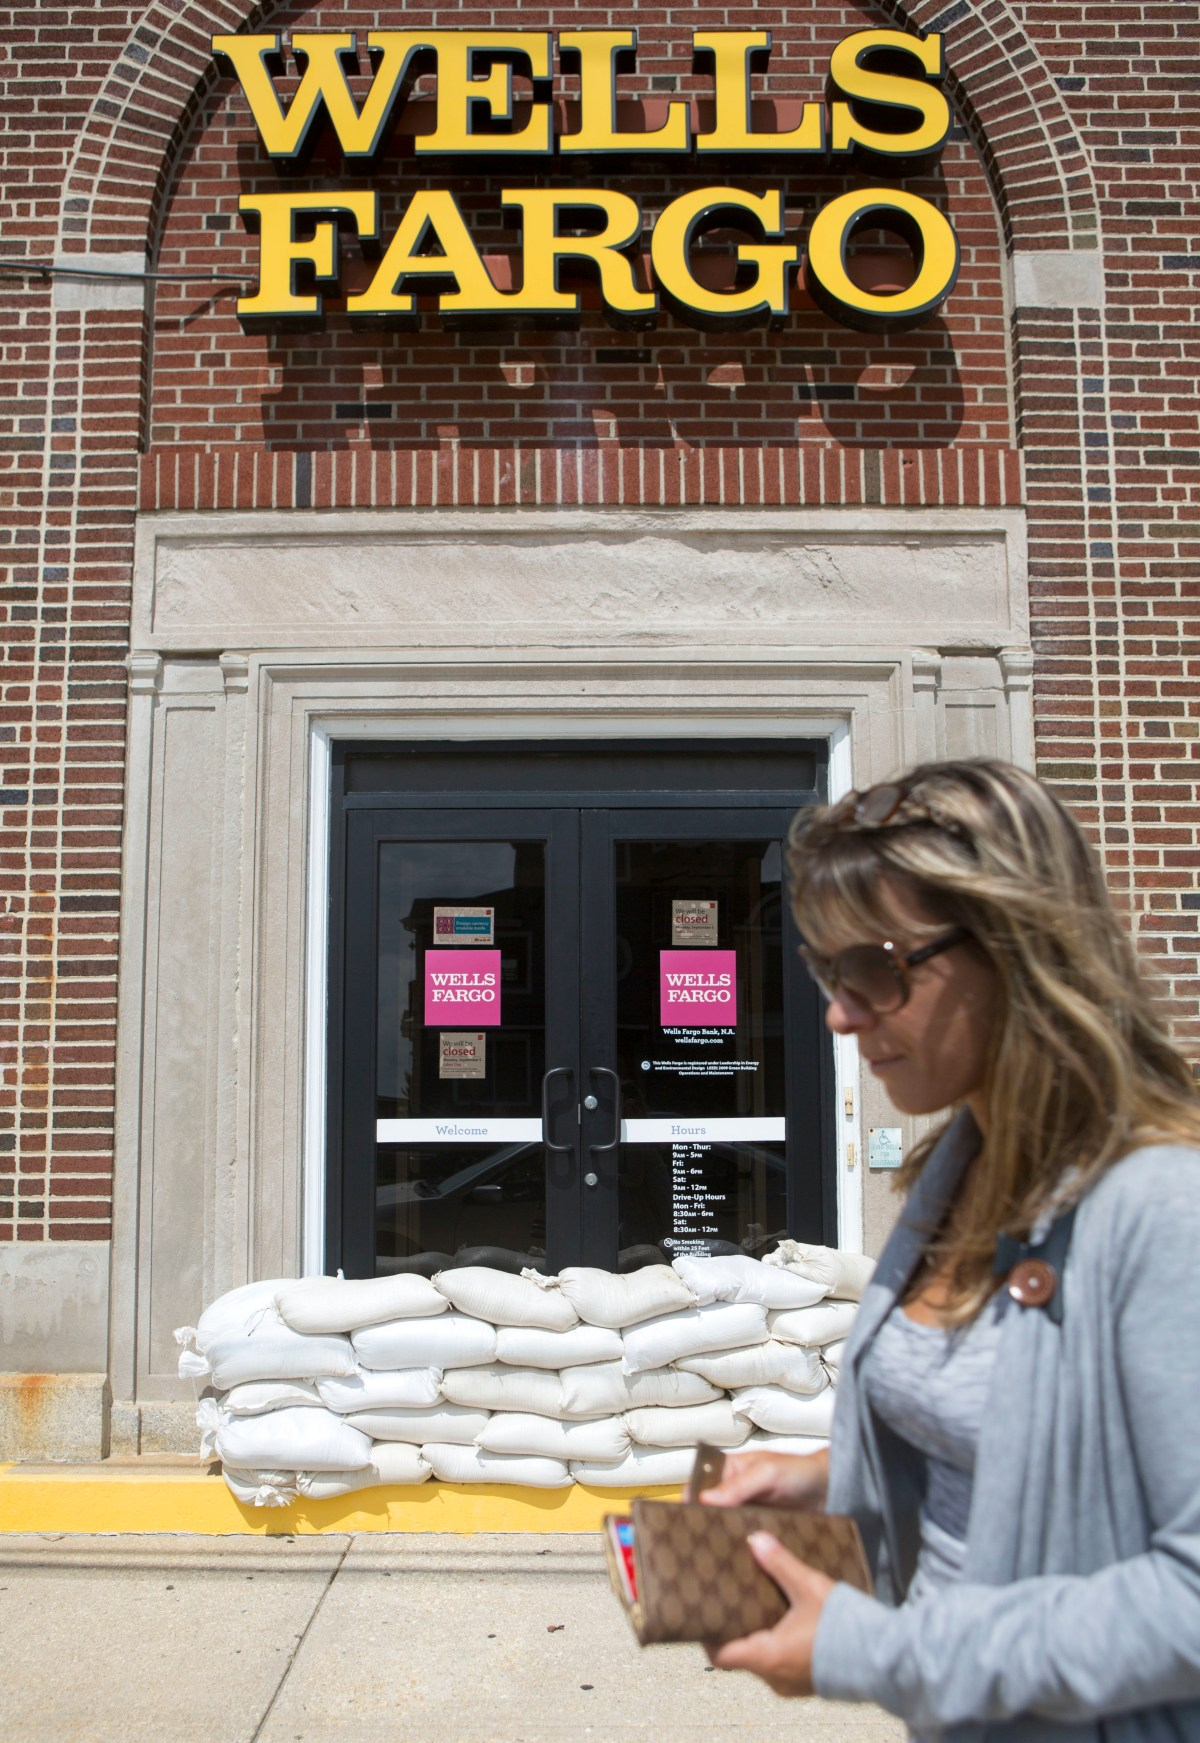 This Wells Fargo Bank Scam Is Insane and 5,300 People Were Just Fired For It   Inverse